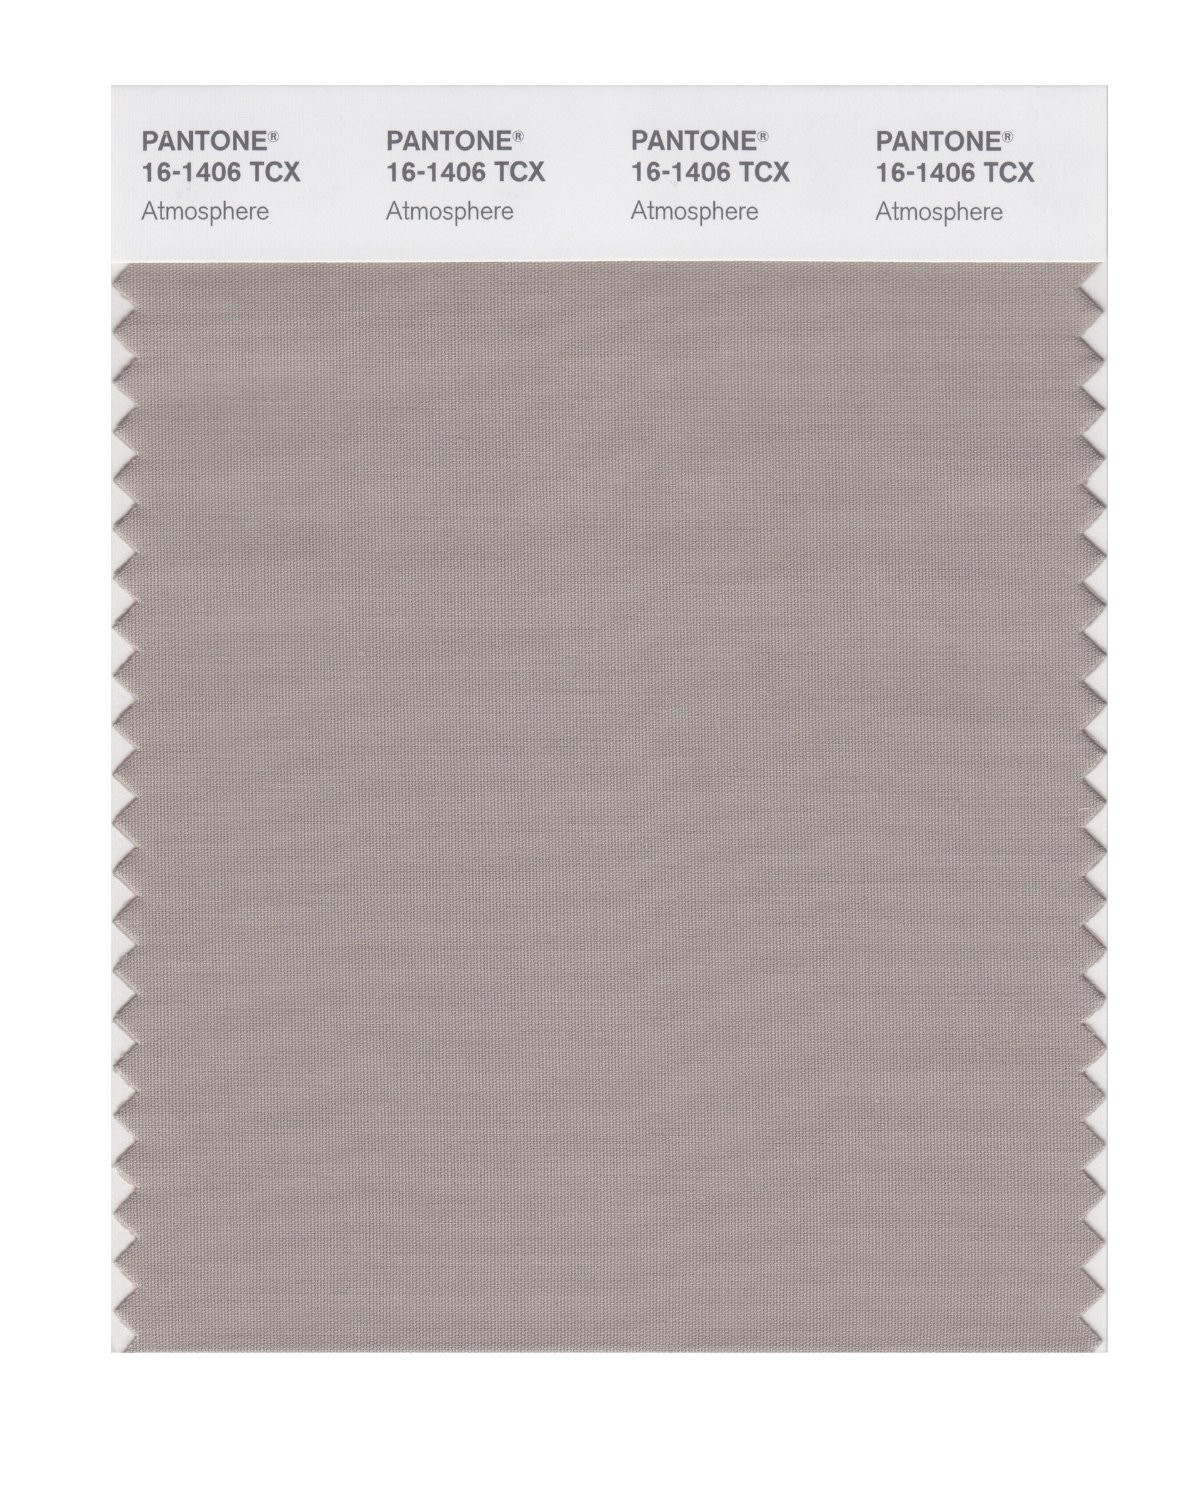 Pantone 16-1406 TCX Swatch Card Atmosphere